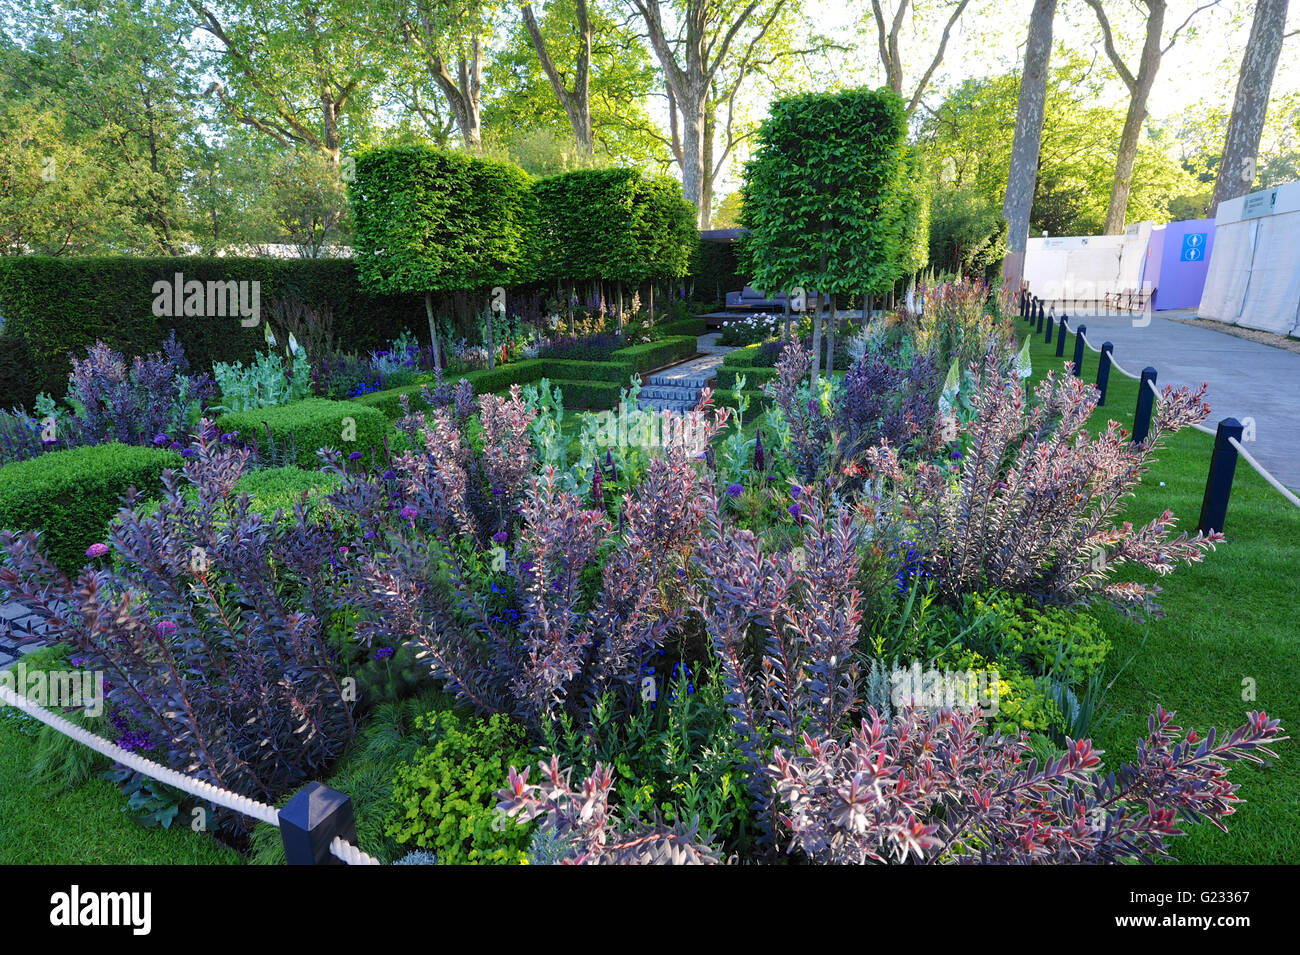 London, UK. 23rd May, 2016. Support, The Husqvarna Garden (designed by Charlie Albone), one of the 17 beautiful - Stock Image